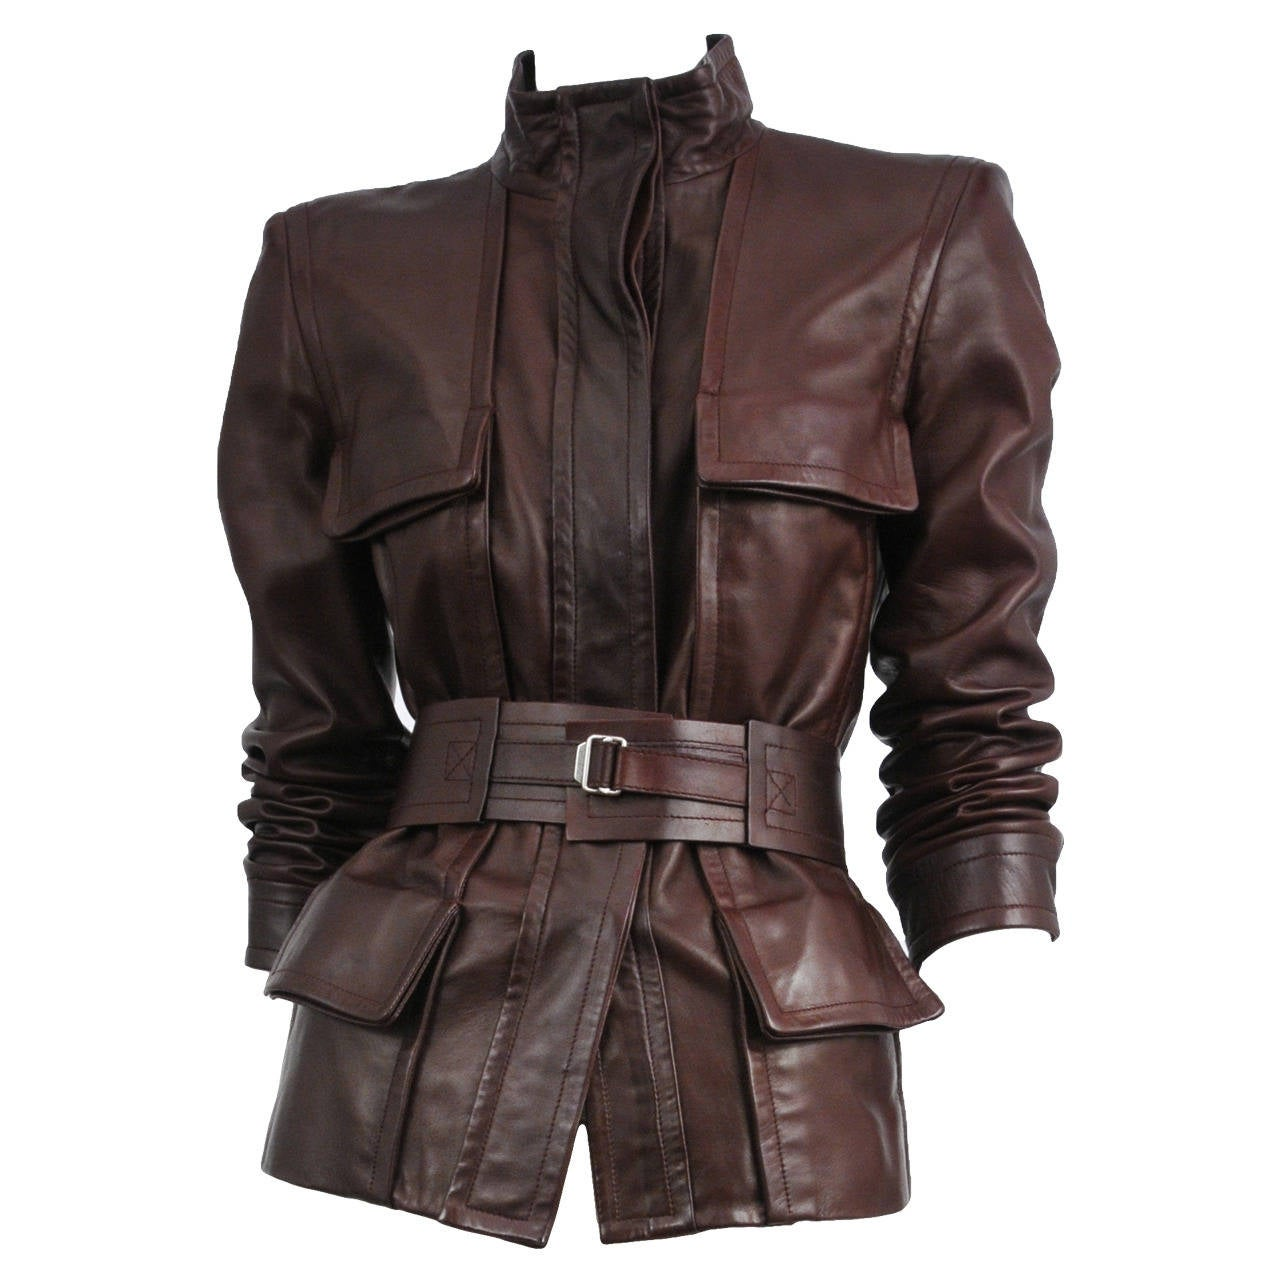 Tom Ford Burgundy Leather Belted Jacket For Sale